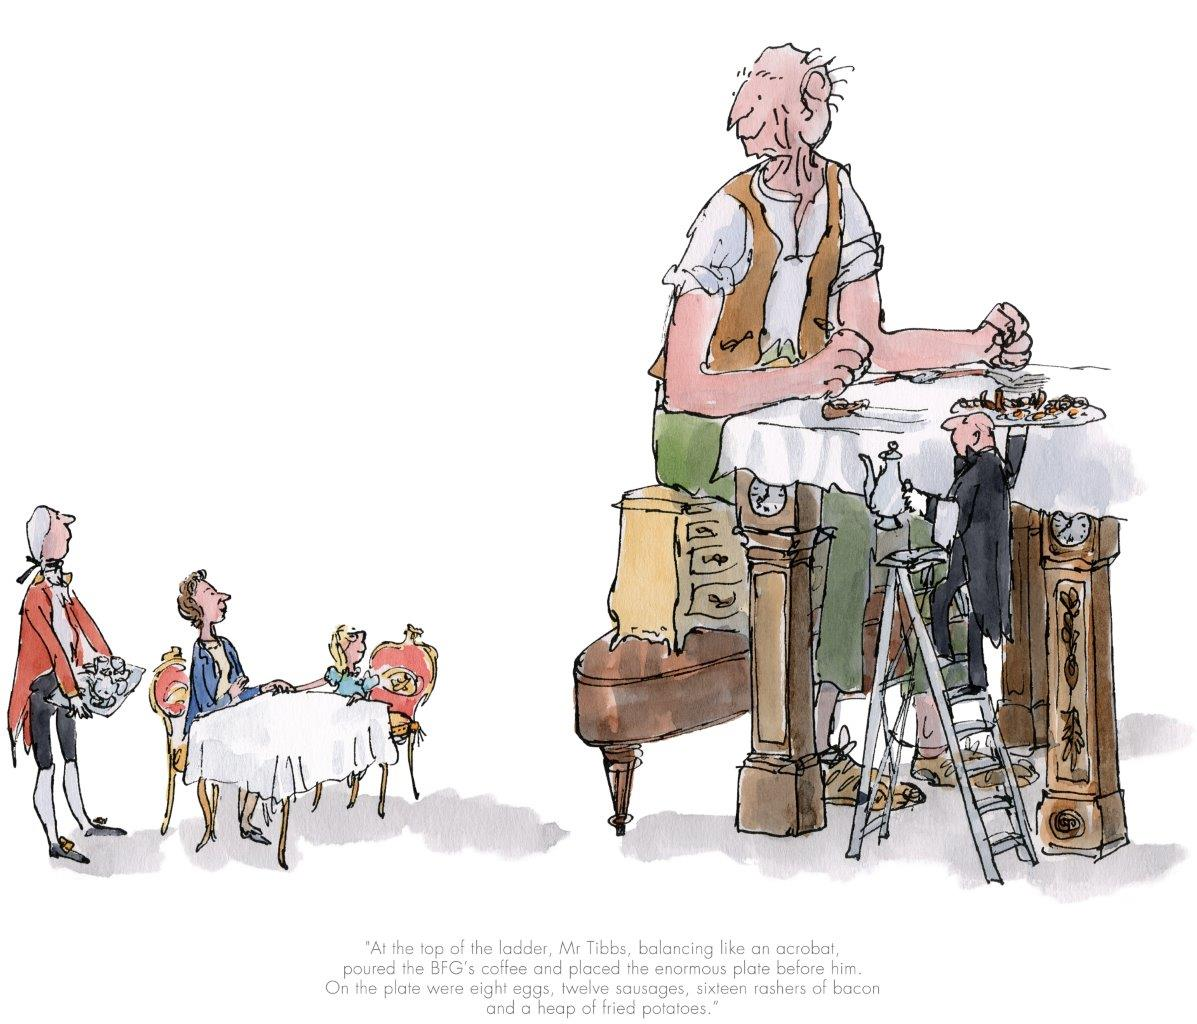 The BFG has breakfast with the Queen by Sir Quentin Blake